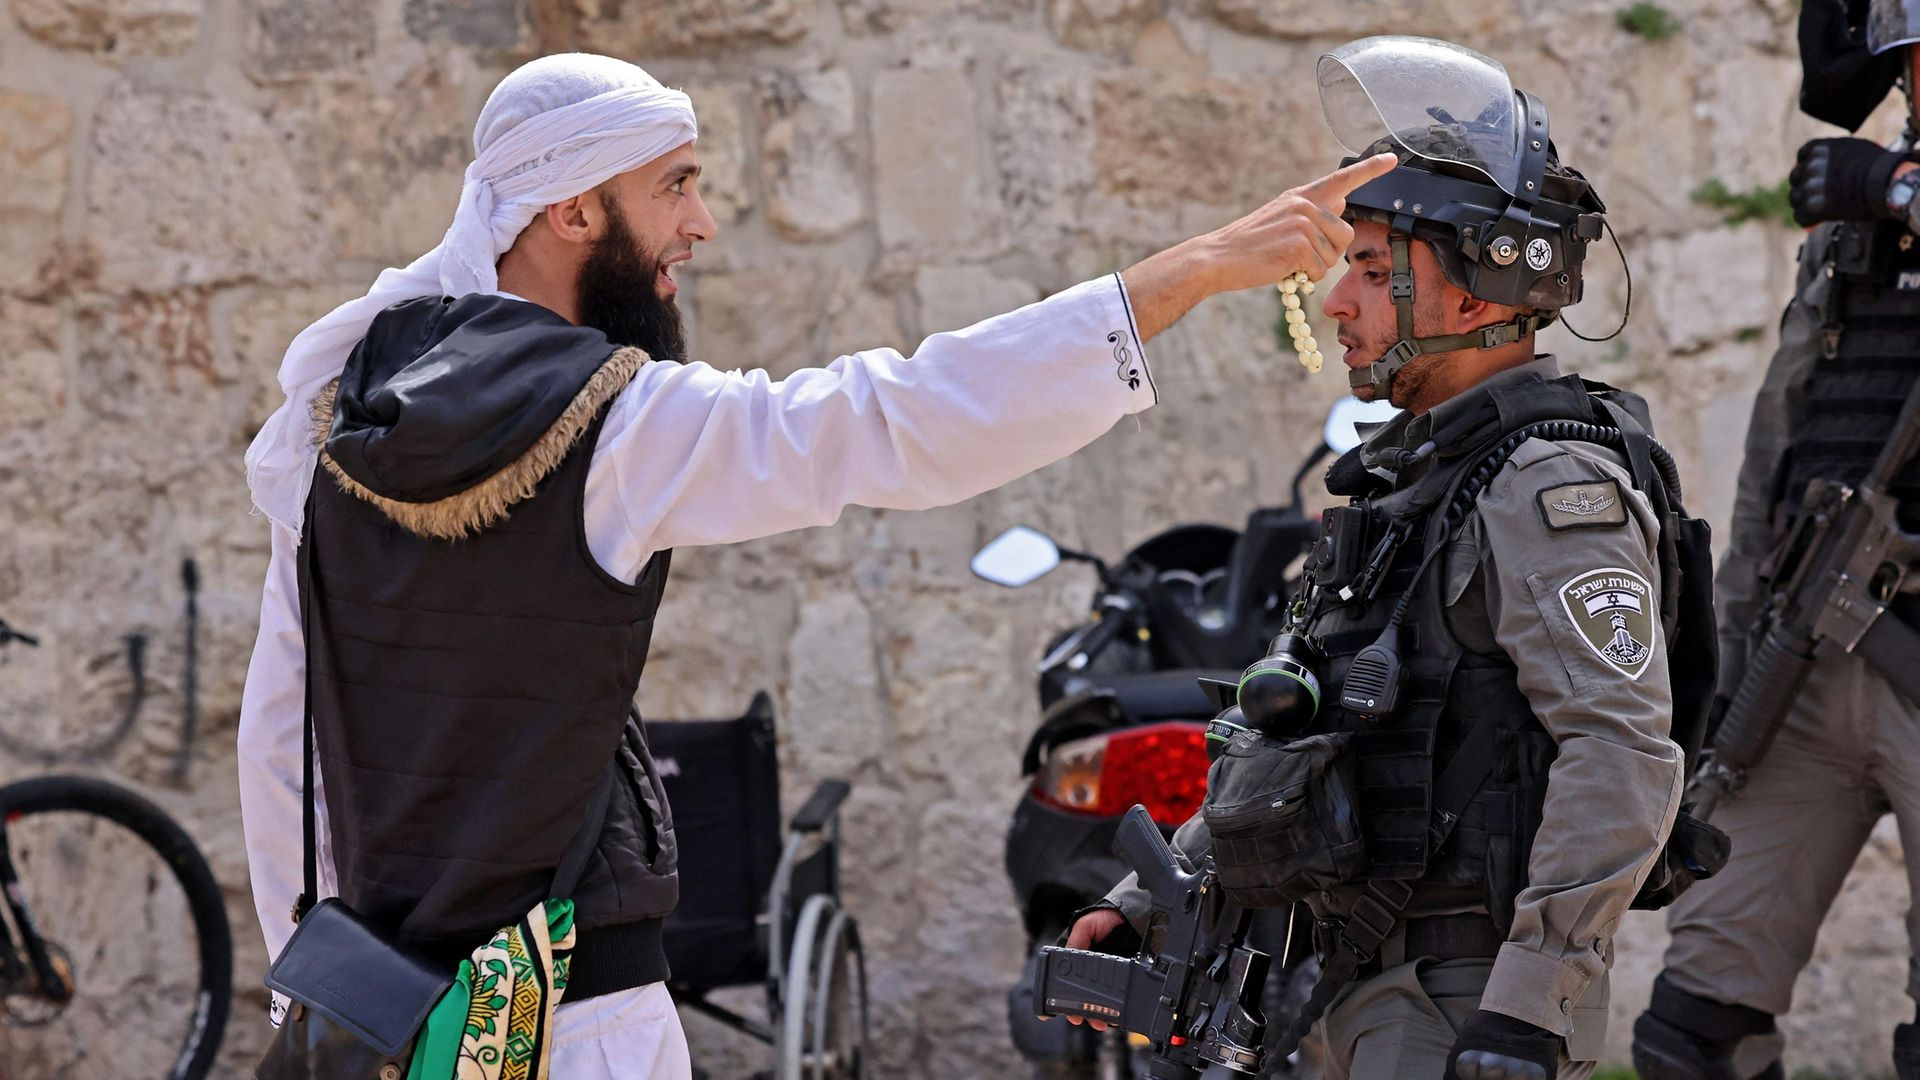 A Palestinian argues with an Israeli soldier in Jerusalem's Old City - Credit: AFP via Getty Images